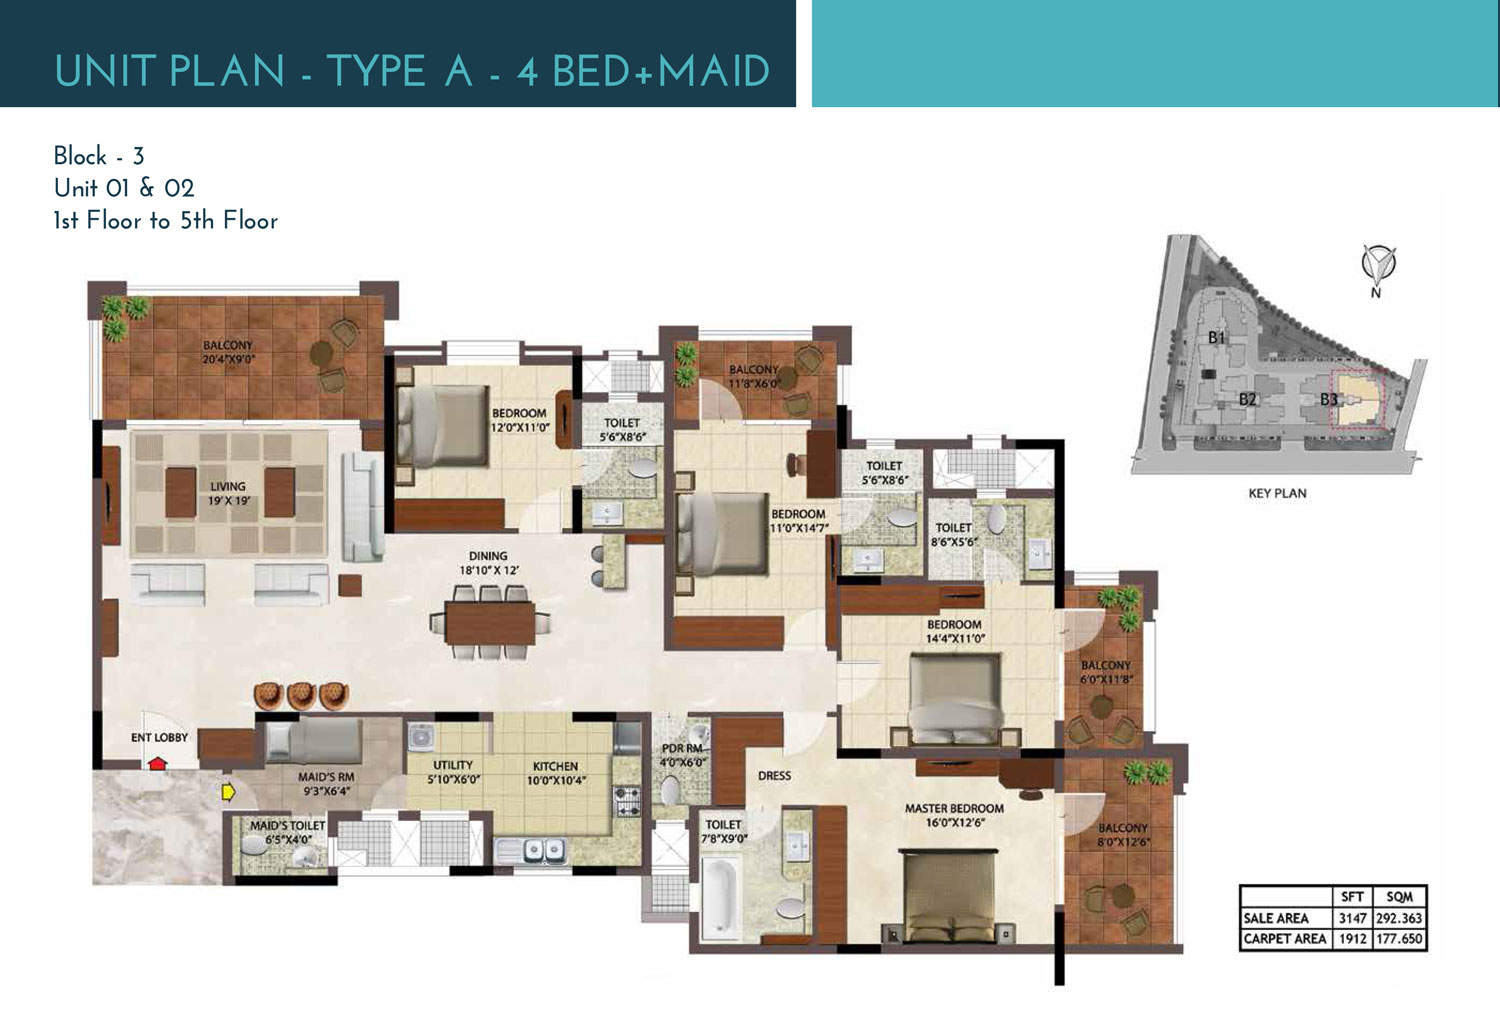 Type A - 4 Bed + Maid